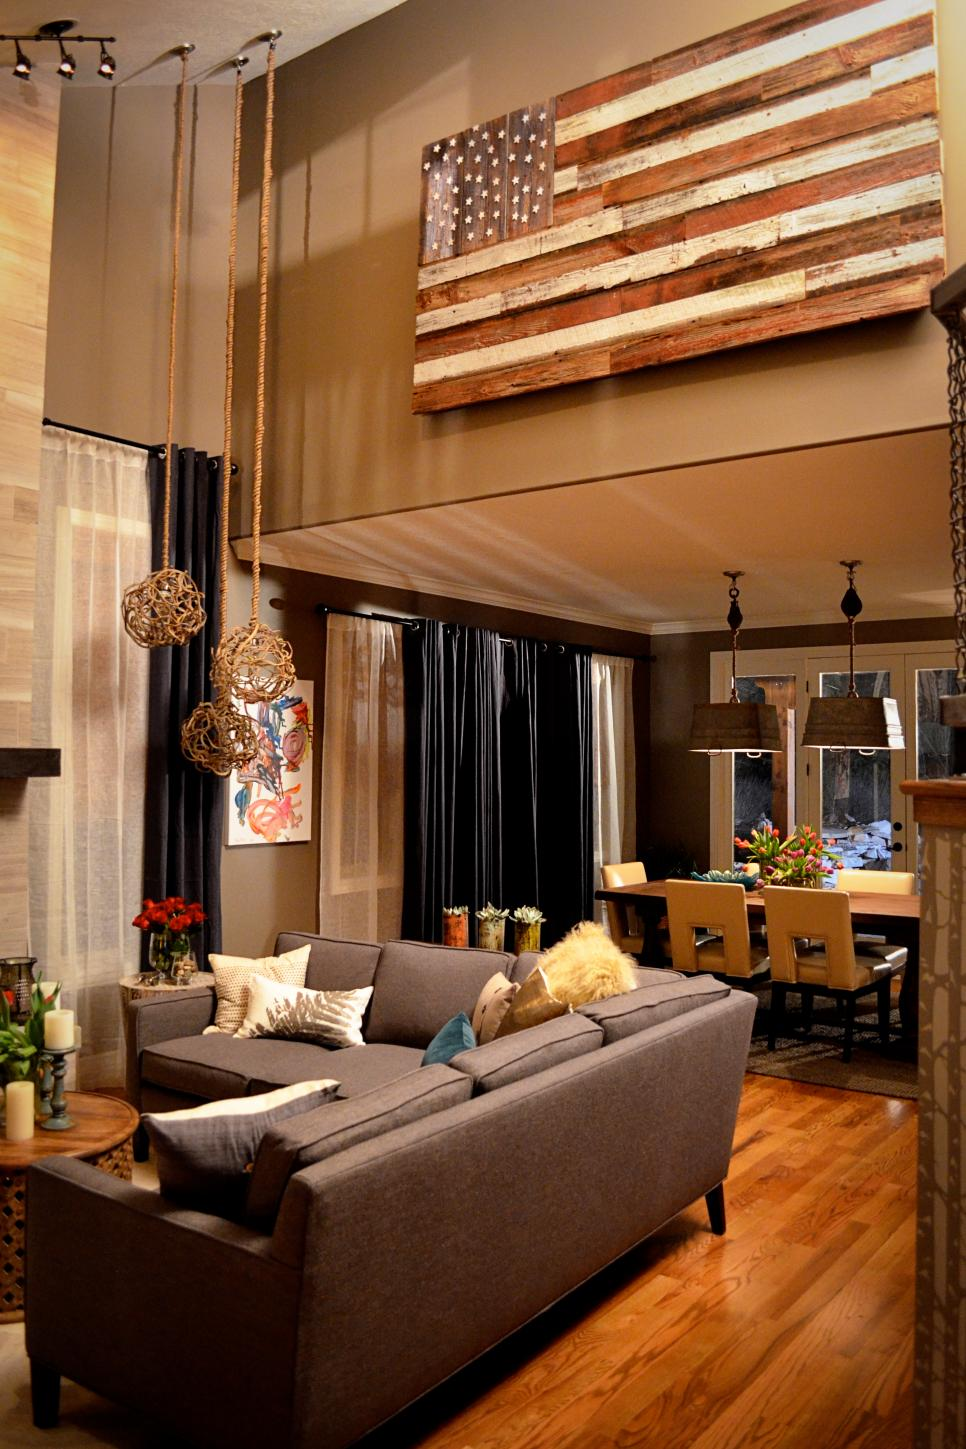 Rustic Barnwood Decorating Ideas | GAC